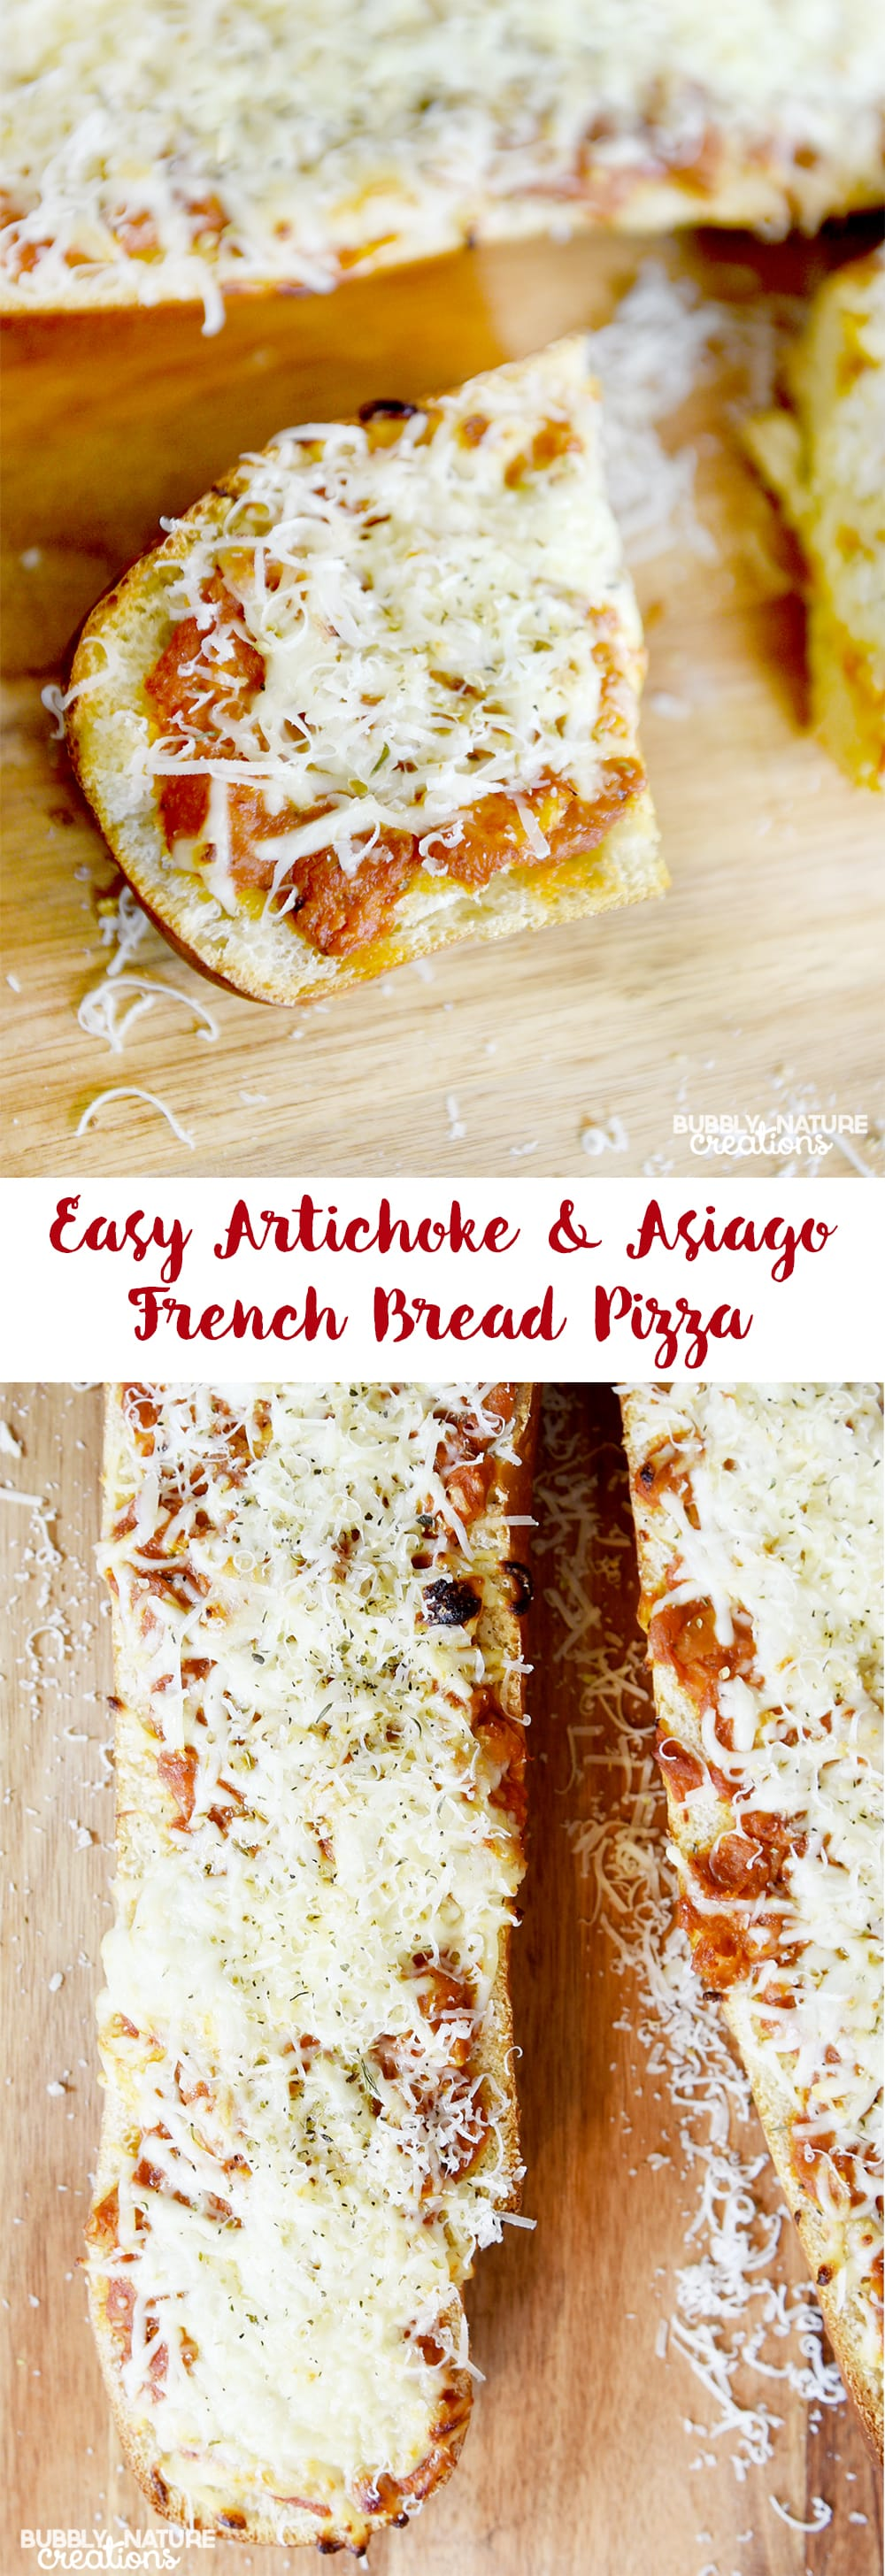 Easy Artichoke and Asiago French Bread Pizza!